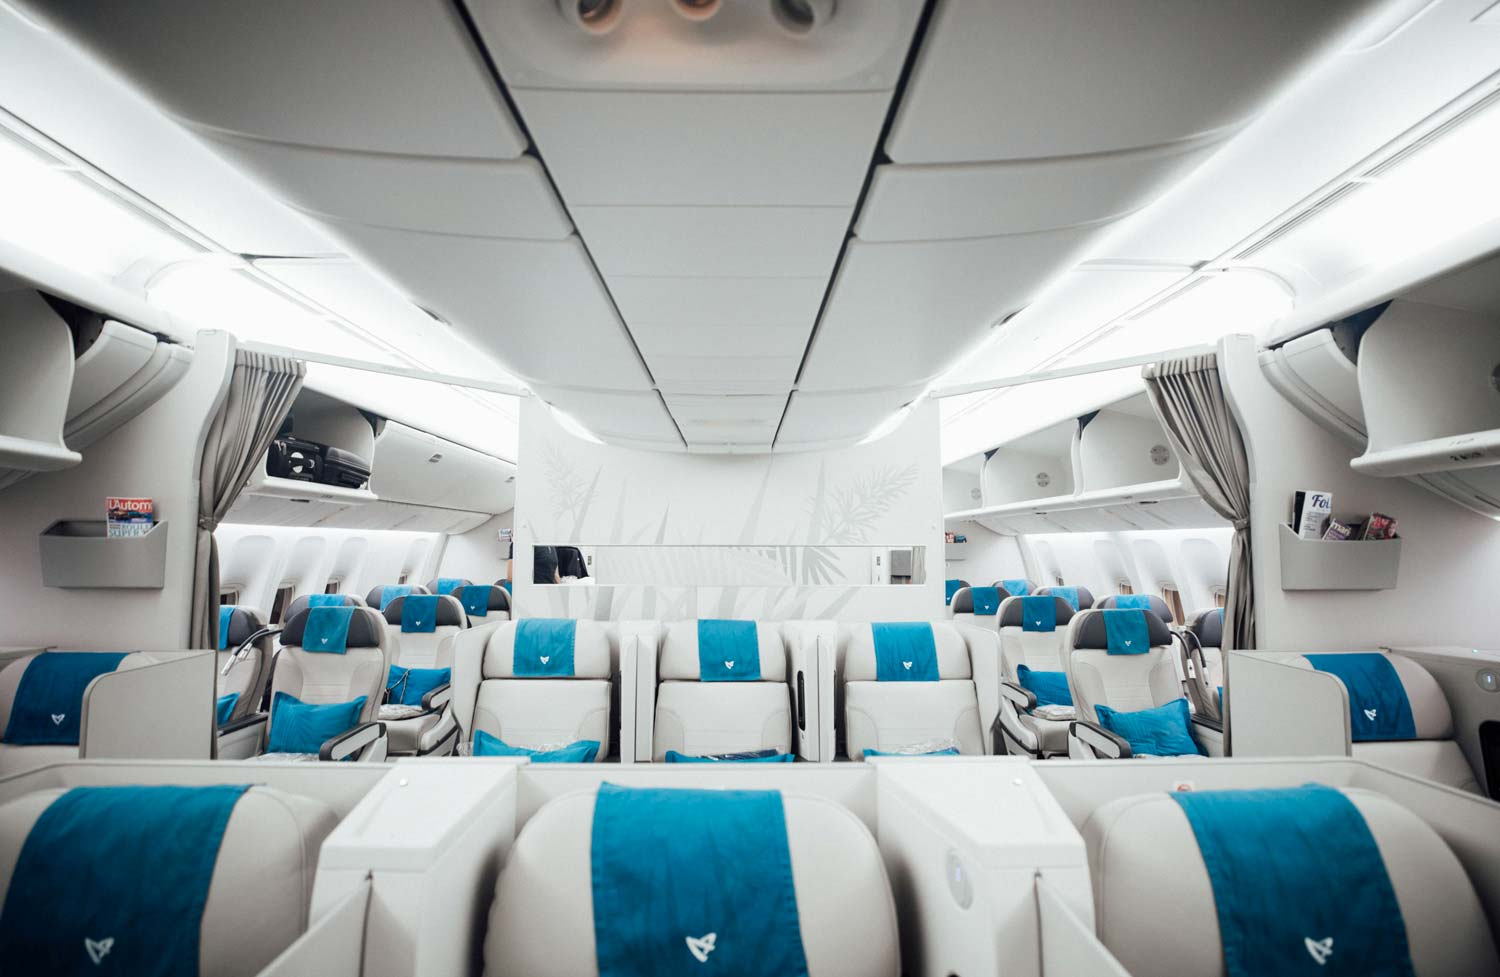 Interieur D'un Avion Xl Airways J Ai Testé Le Vol Marseille La Réunion Avec Air Austral